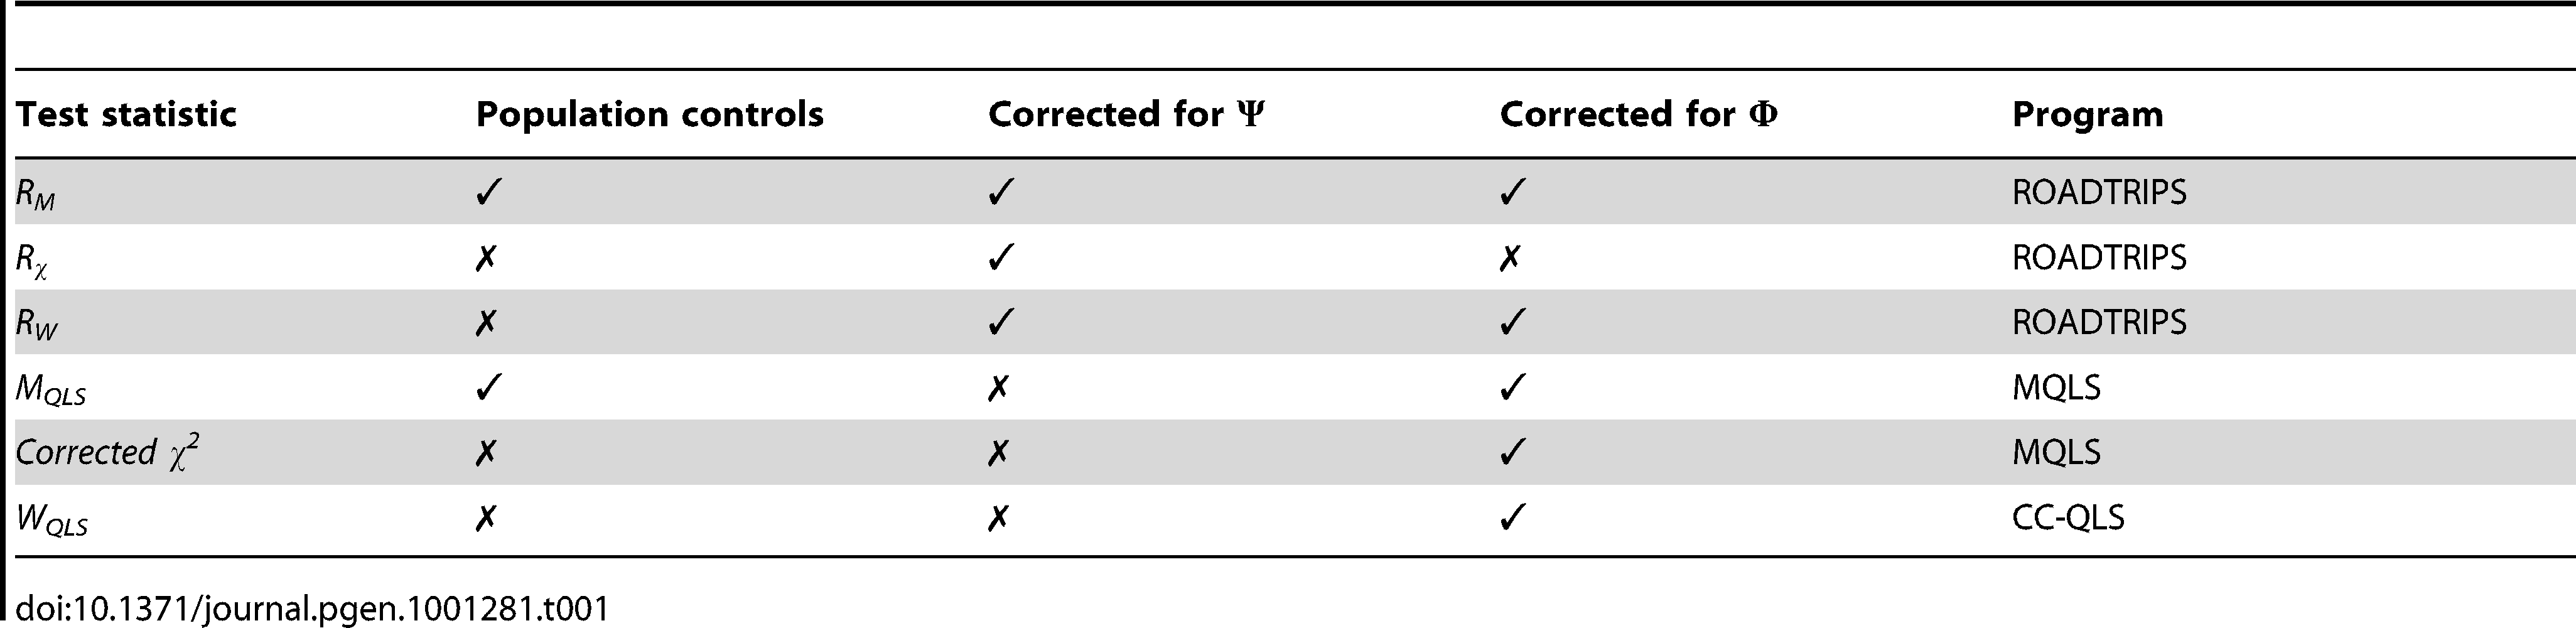 Summary of the test statistics used in the analysis.